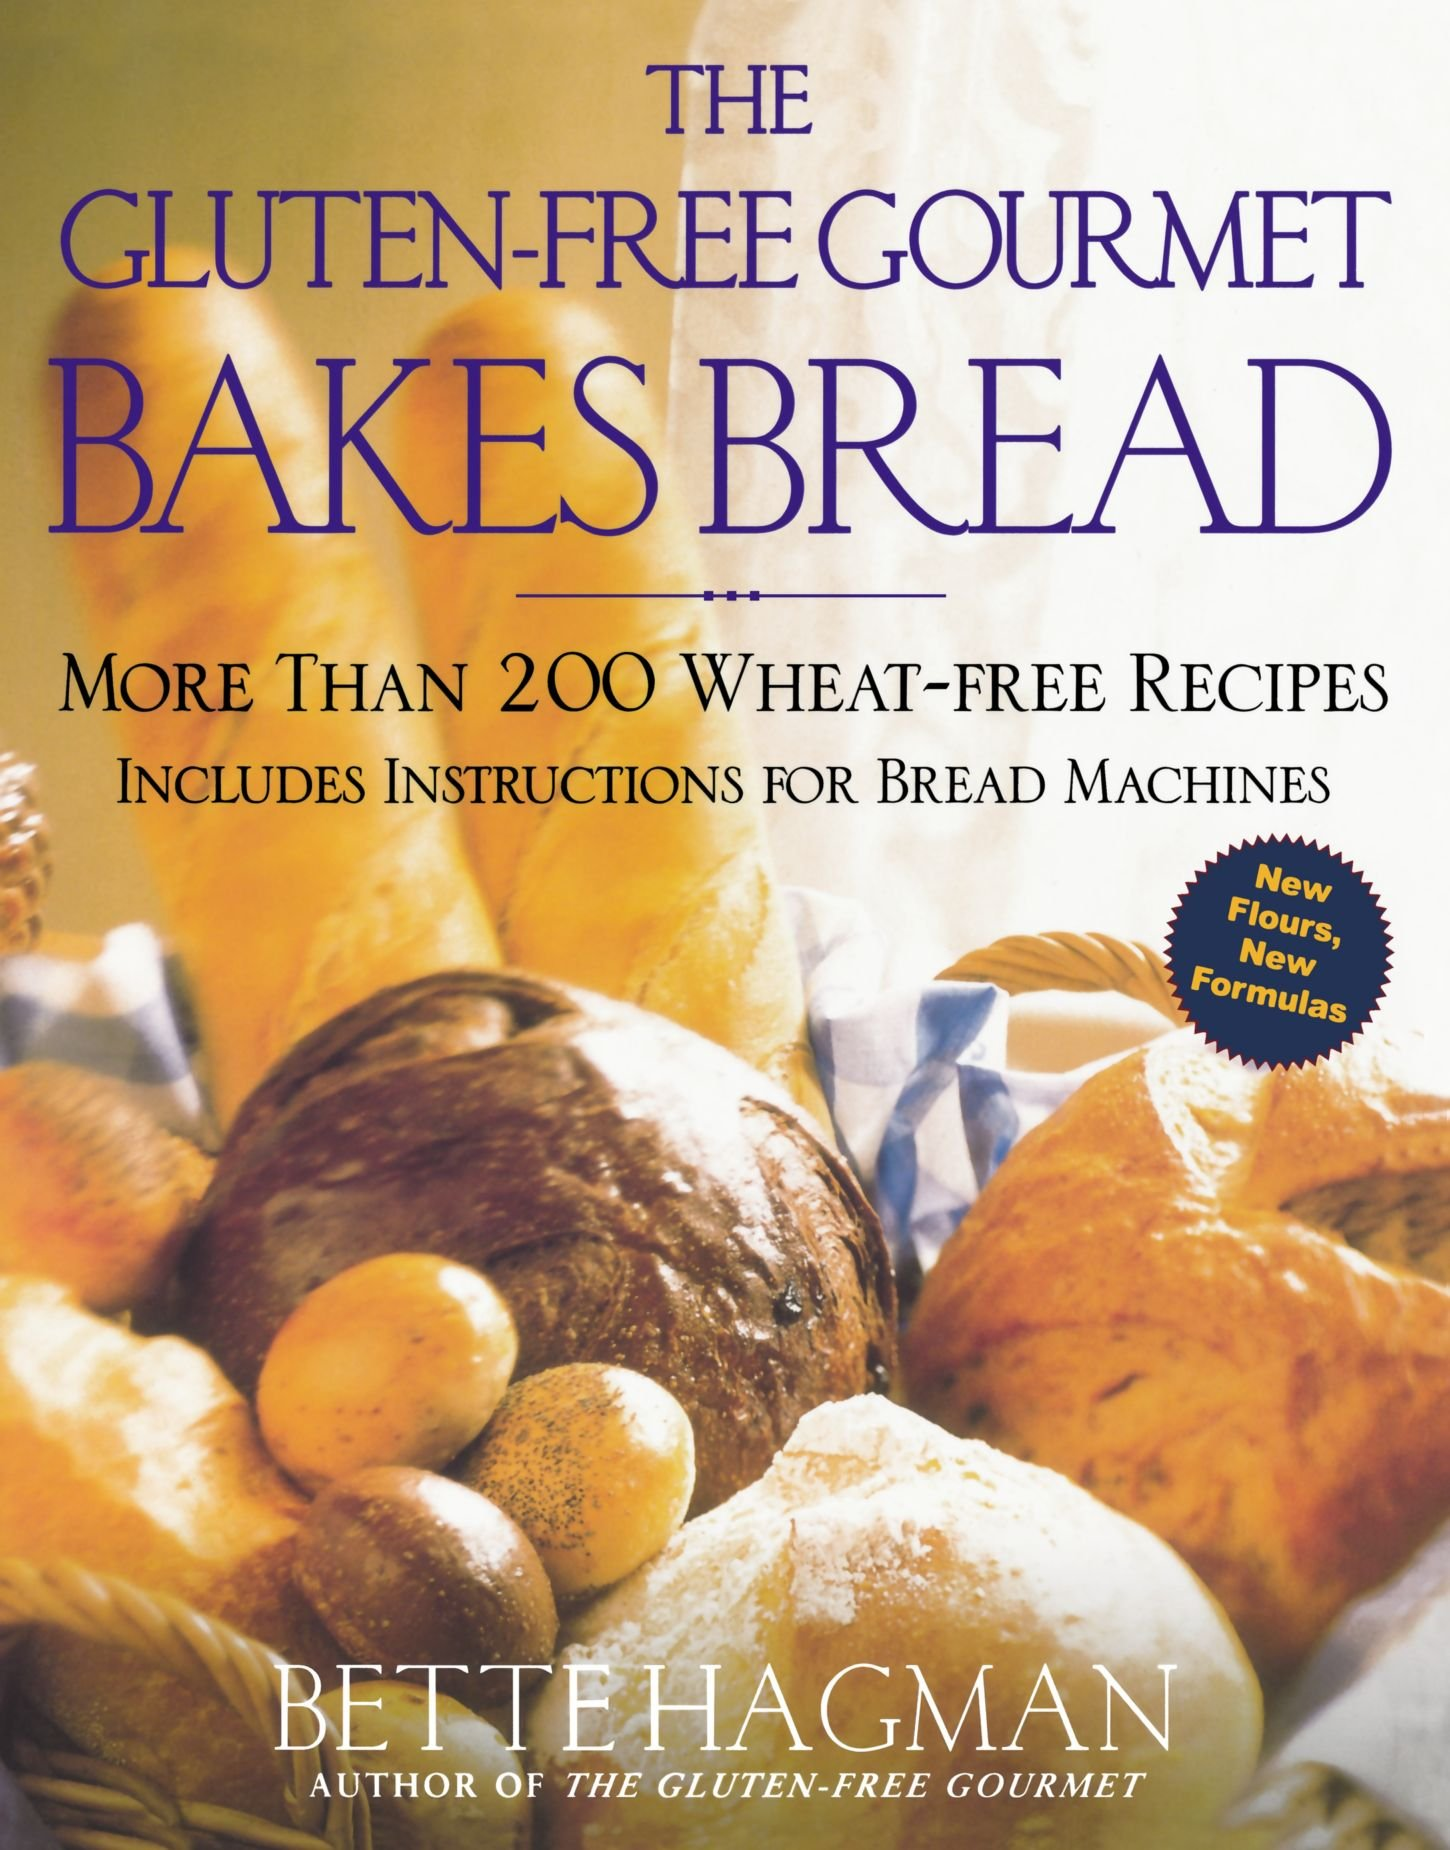 The gluten free gourmet bakes bread more than 200 wheat free the gluten free gourmet bakes bread more than 200 wheat free recipes bette hagman peter h r green md 9780805060782 amazon books forumfinder Gallery